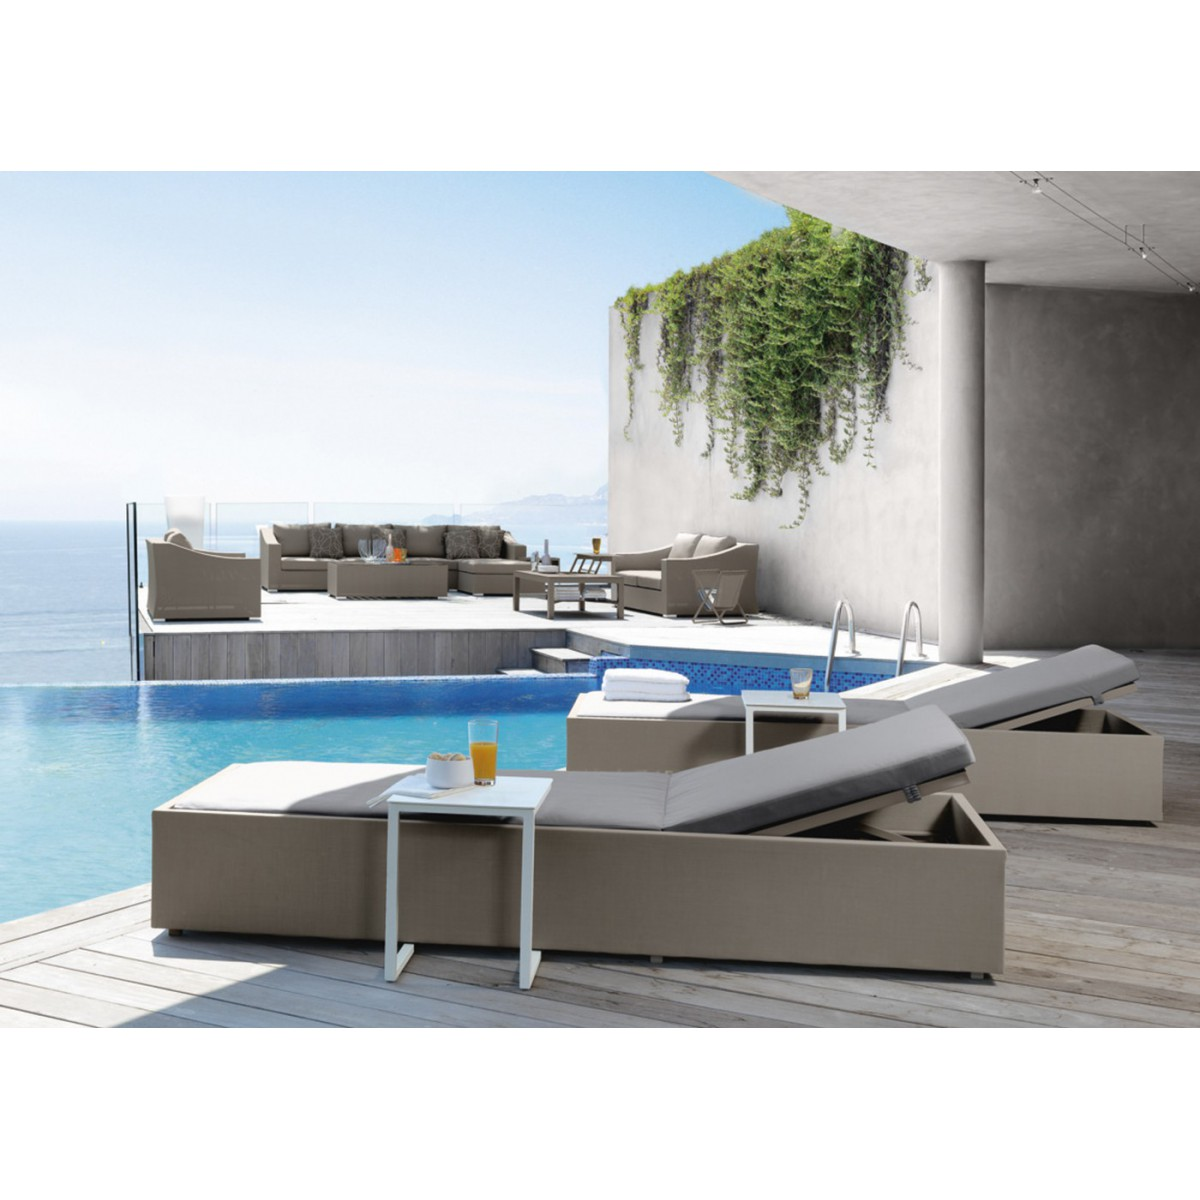 transat de jardin ou bain de soleil chic par talenti. Black Bedroom Furniture Sets. Home Design Ideas